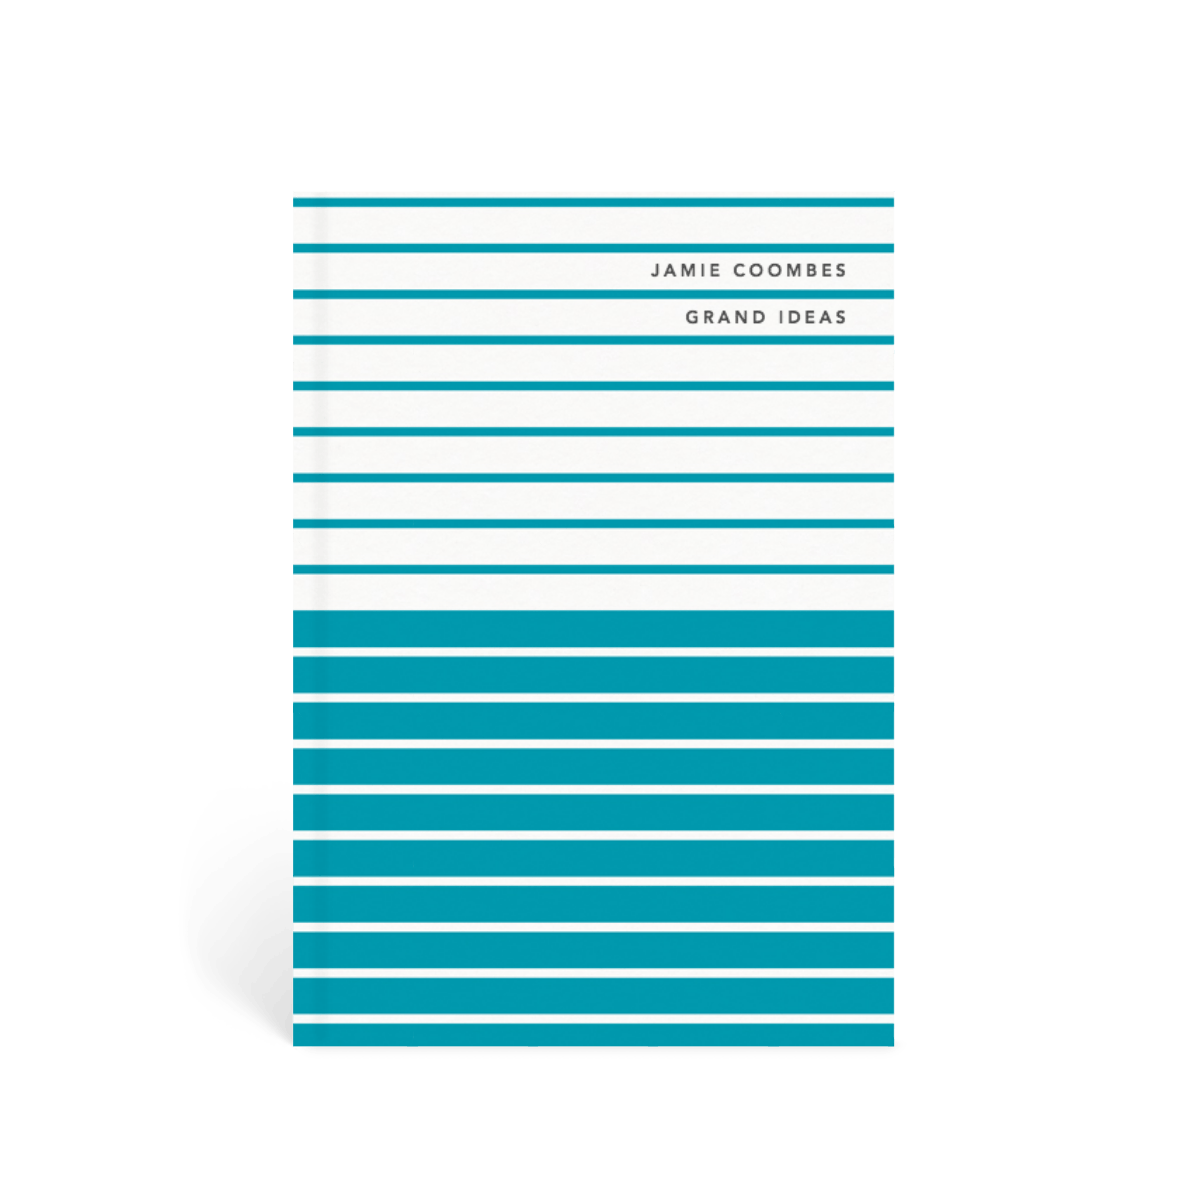 Https%3a%2f%2fwww.papier.com%2fproduct image%2f51002%2f25%2fdouble stripe 12487 front 1540308501.png?ixlib=rb 1.1